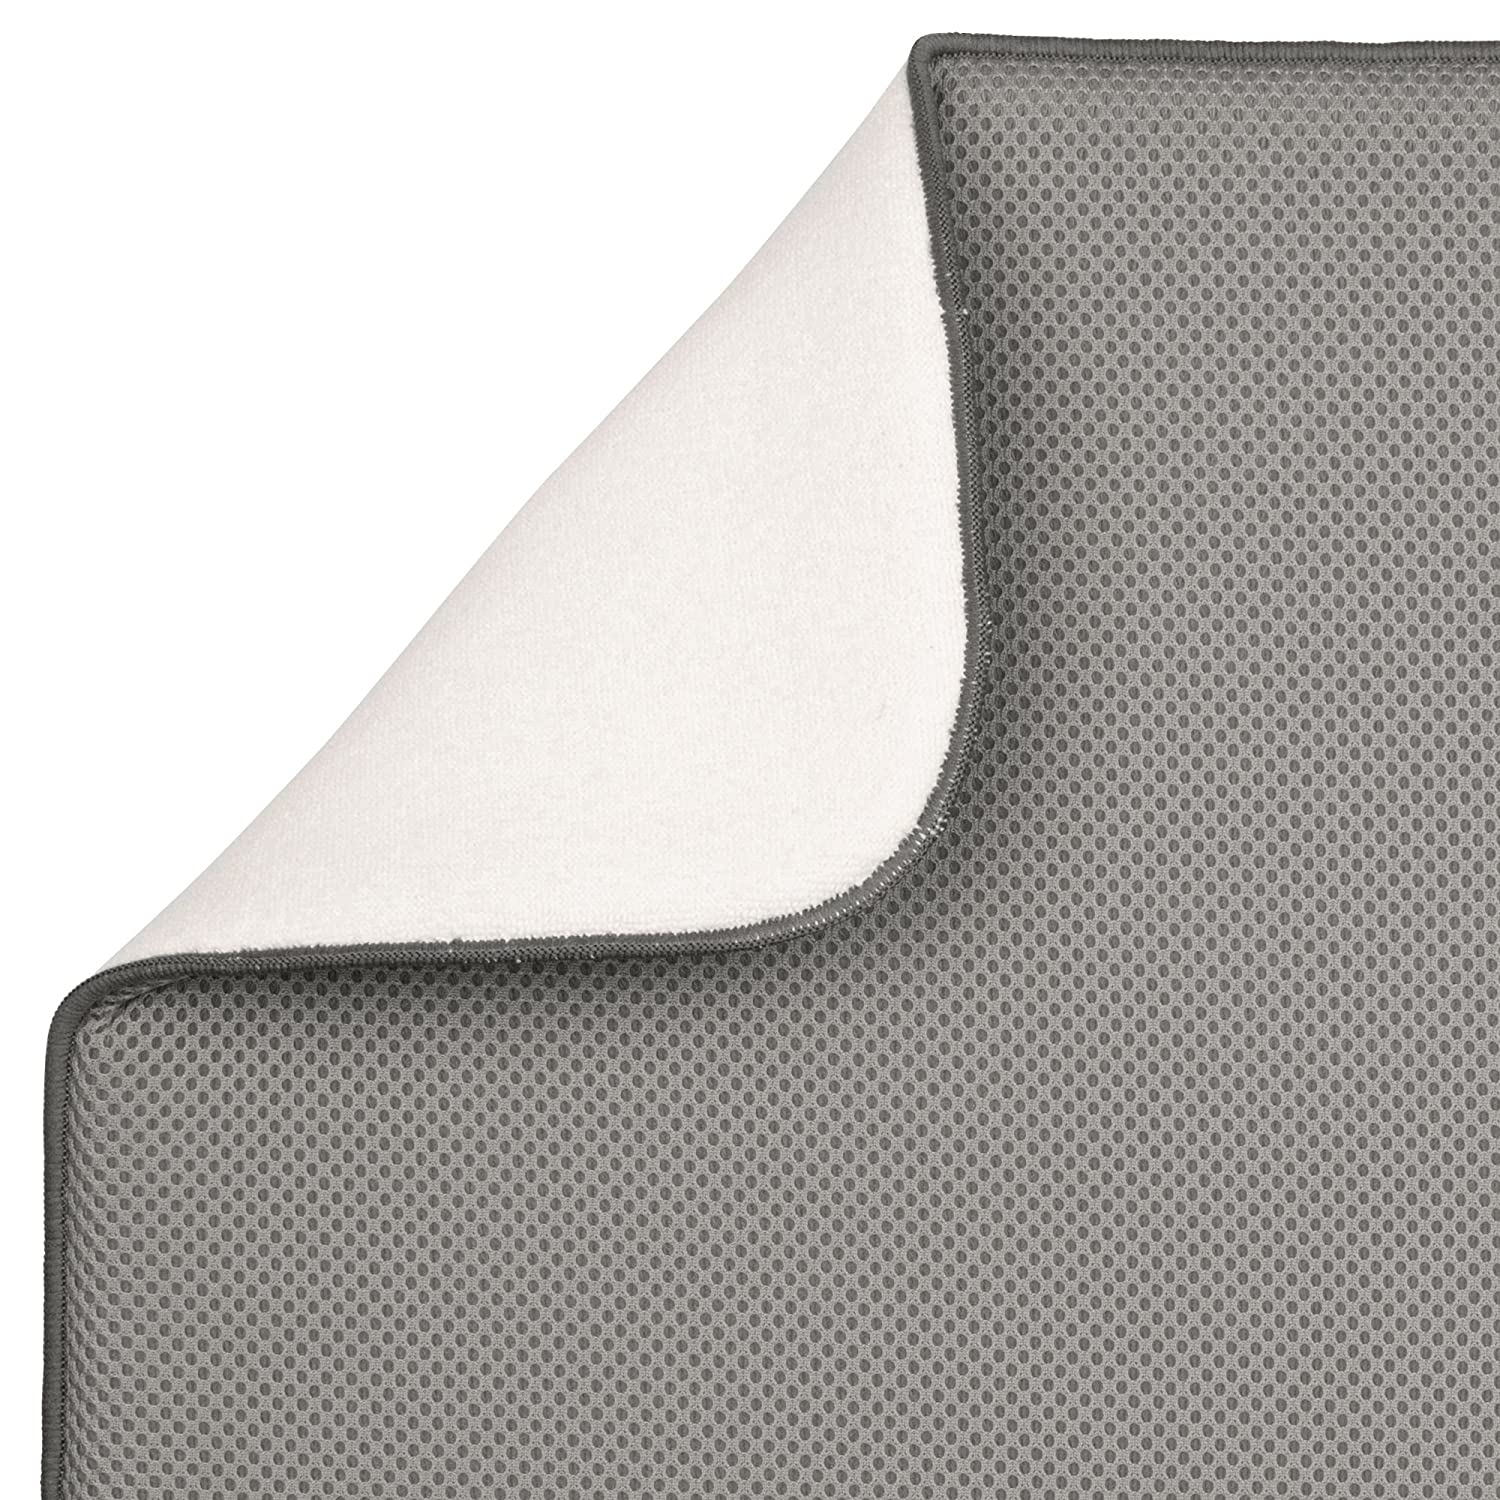 Pewter Gray 18 x 16 MetroDecor 3598MDK Pack of 2 mDesign Kitchen Countertop Absorbent Dish Drying Mat 18 x 16